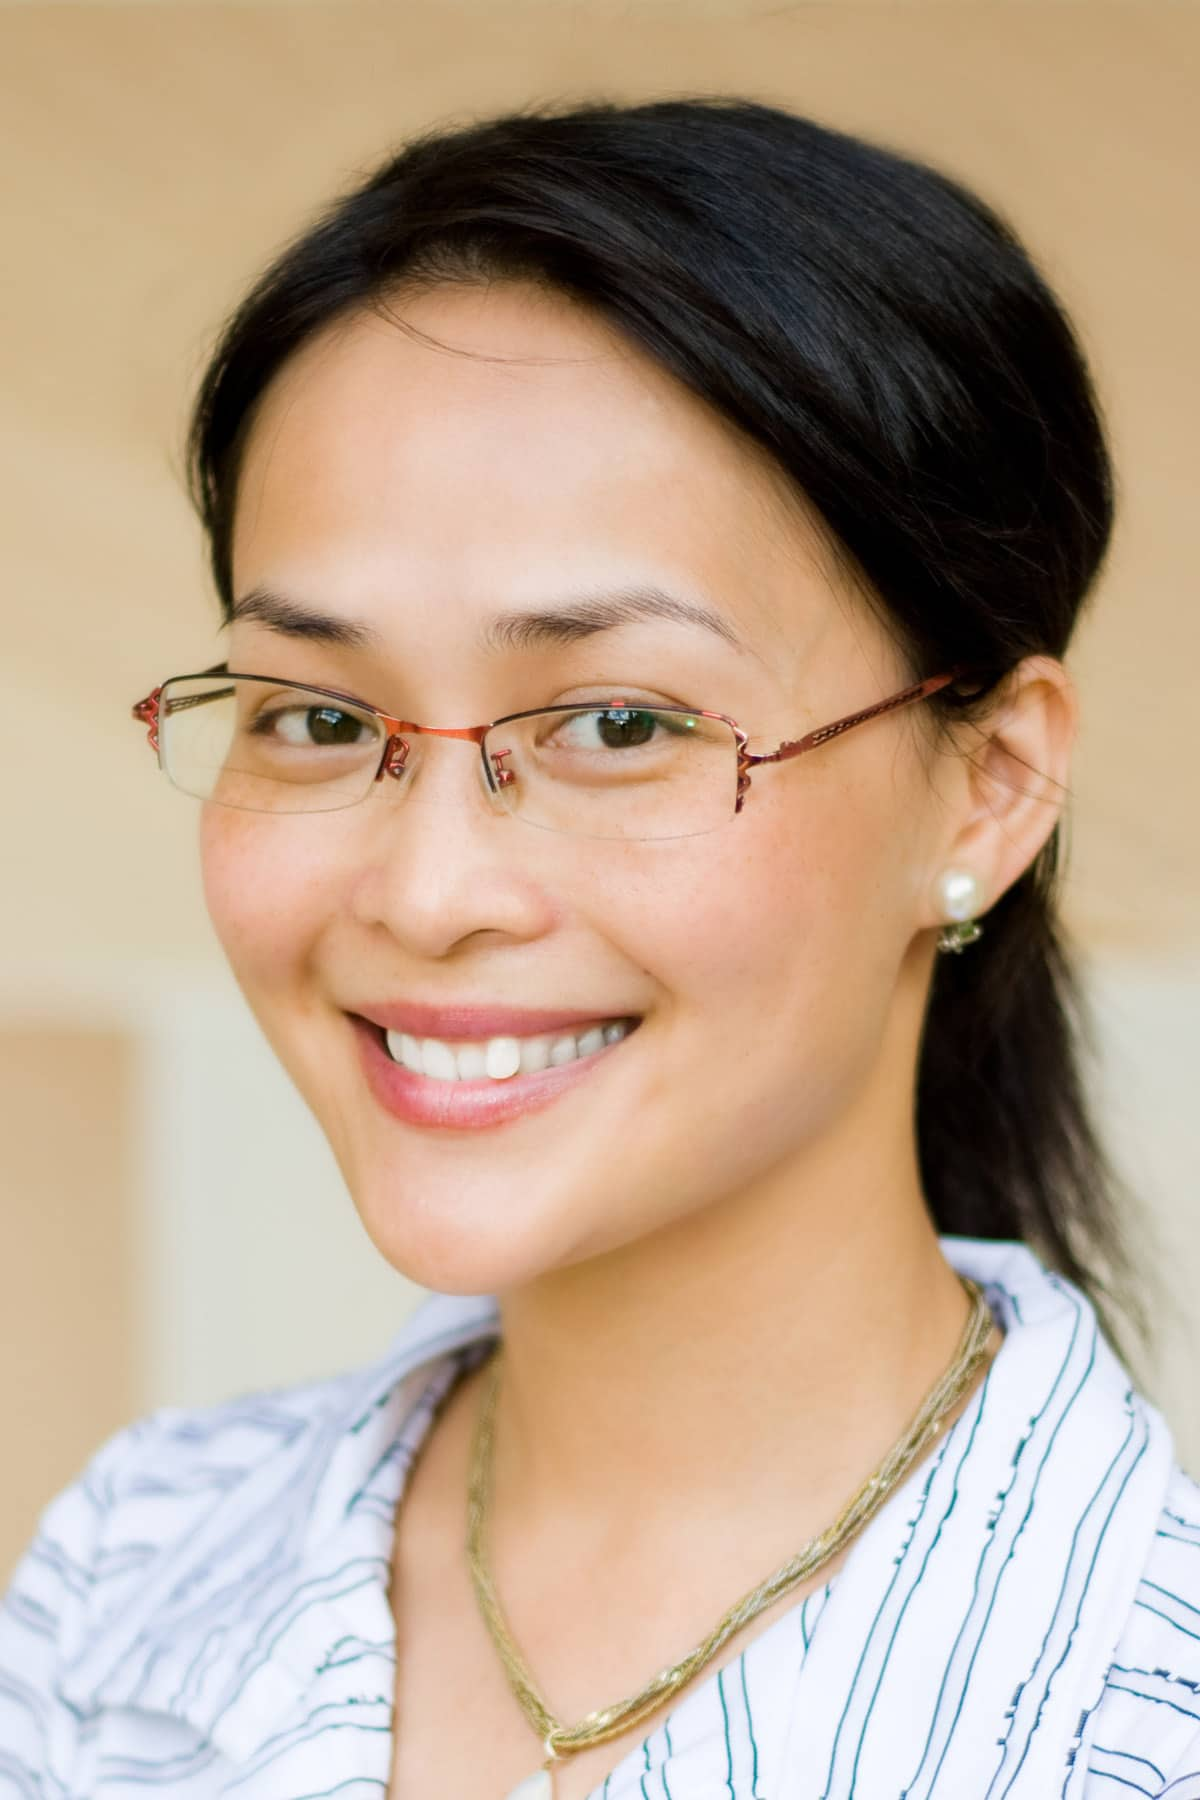 Joanne Mak Neurological & Rehabilitation Physiotherapist